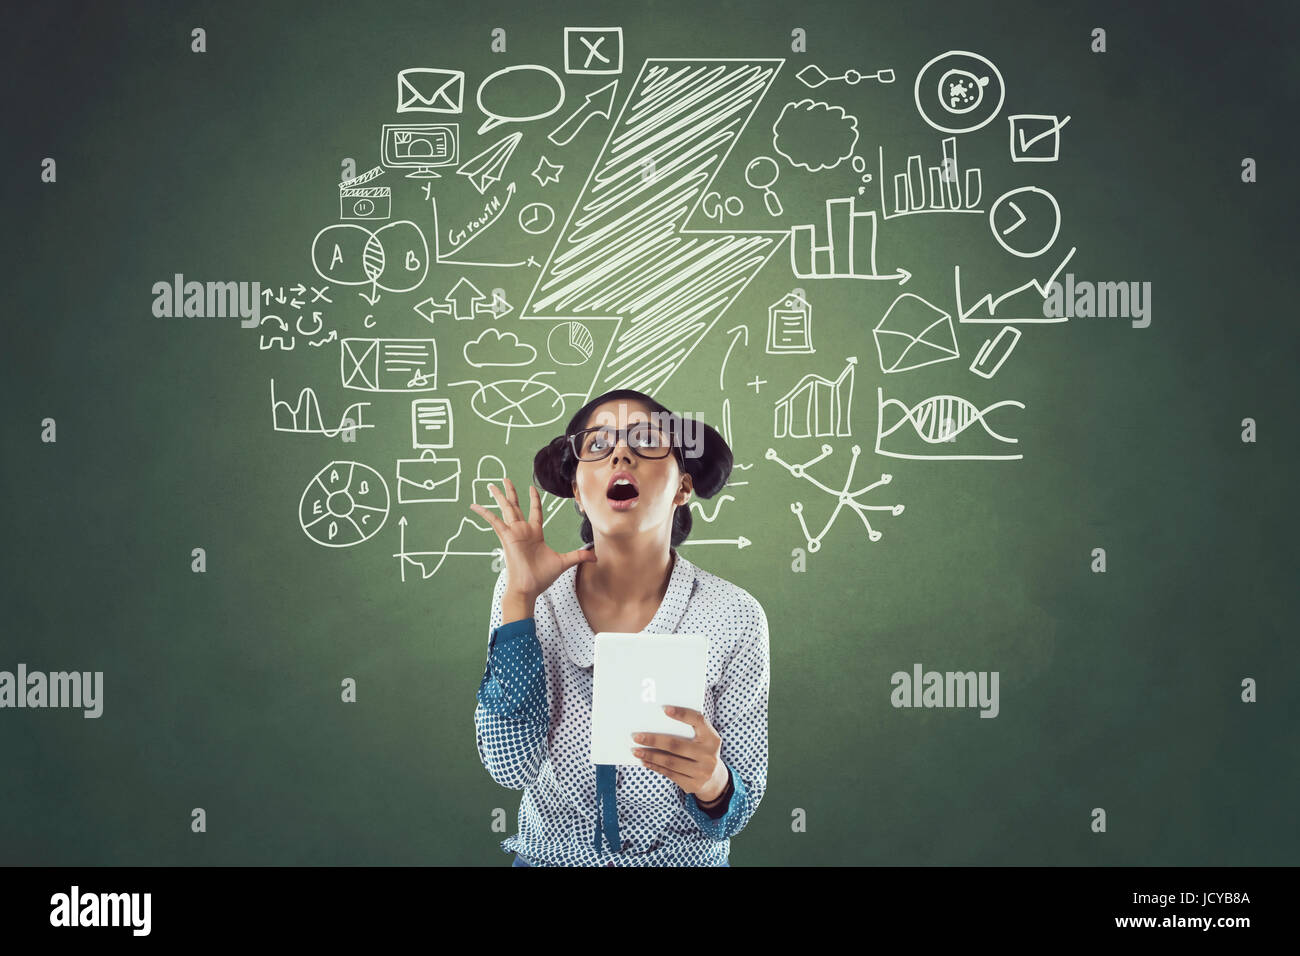 Businesswoman using digital tablet in front of blackboard with icons - Stock Image